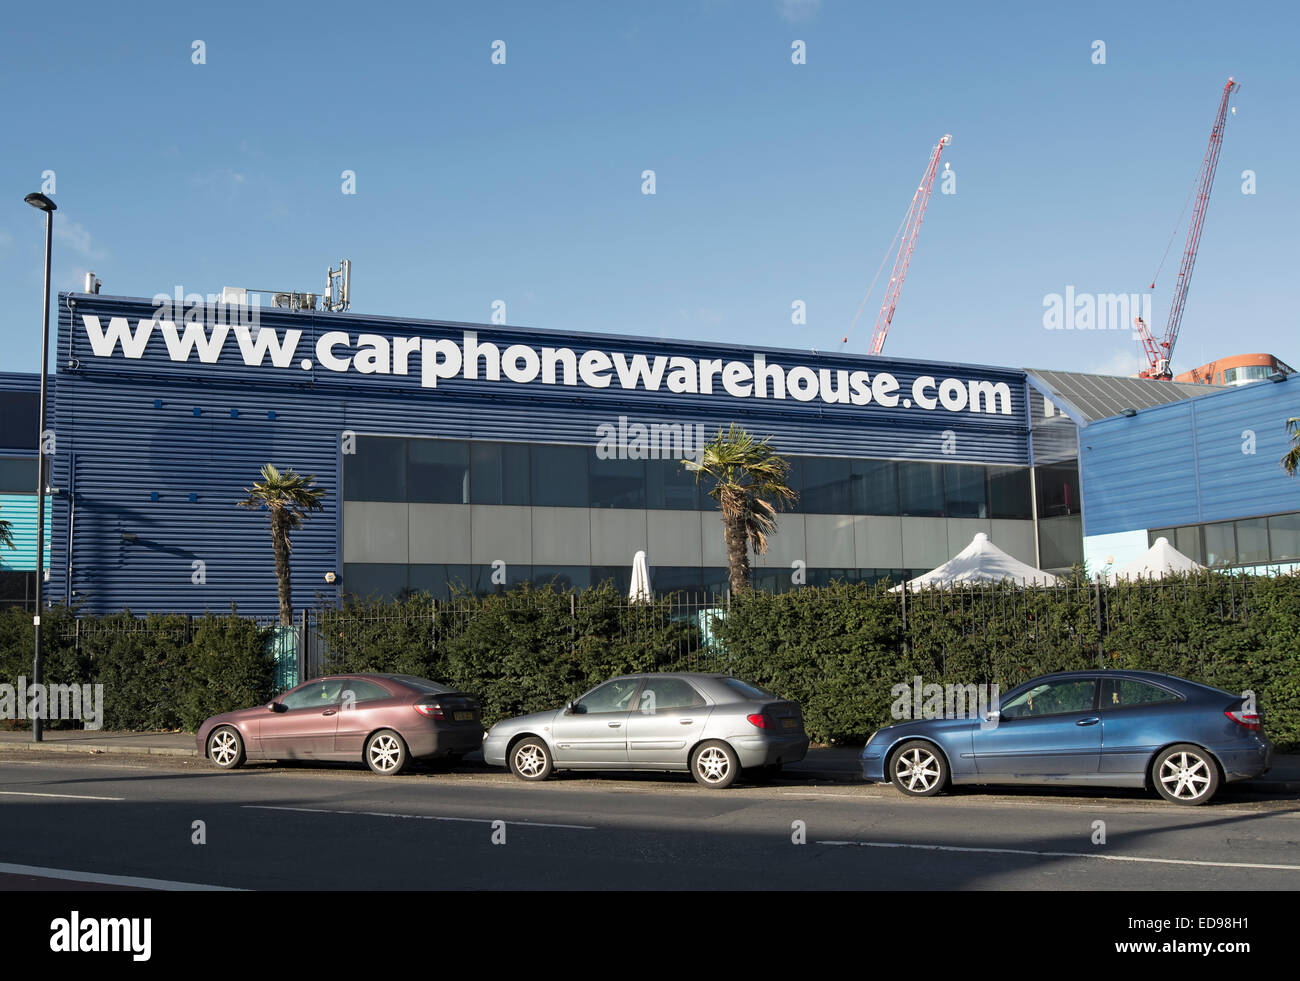 Cars Parked Outside The Corporate Headquarters Of Mobile Phone